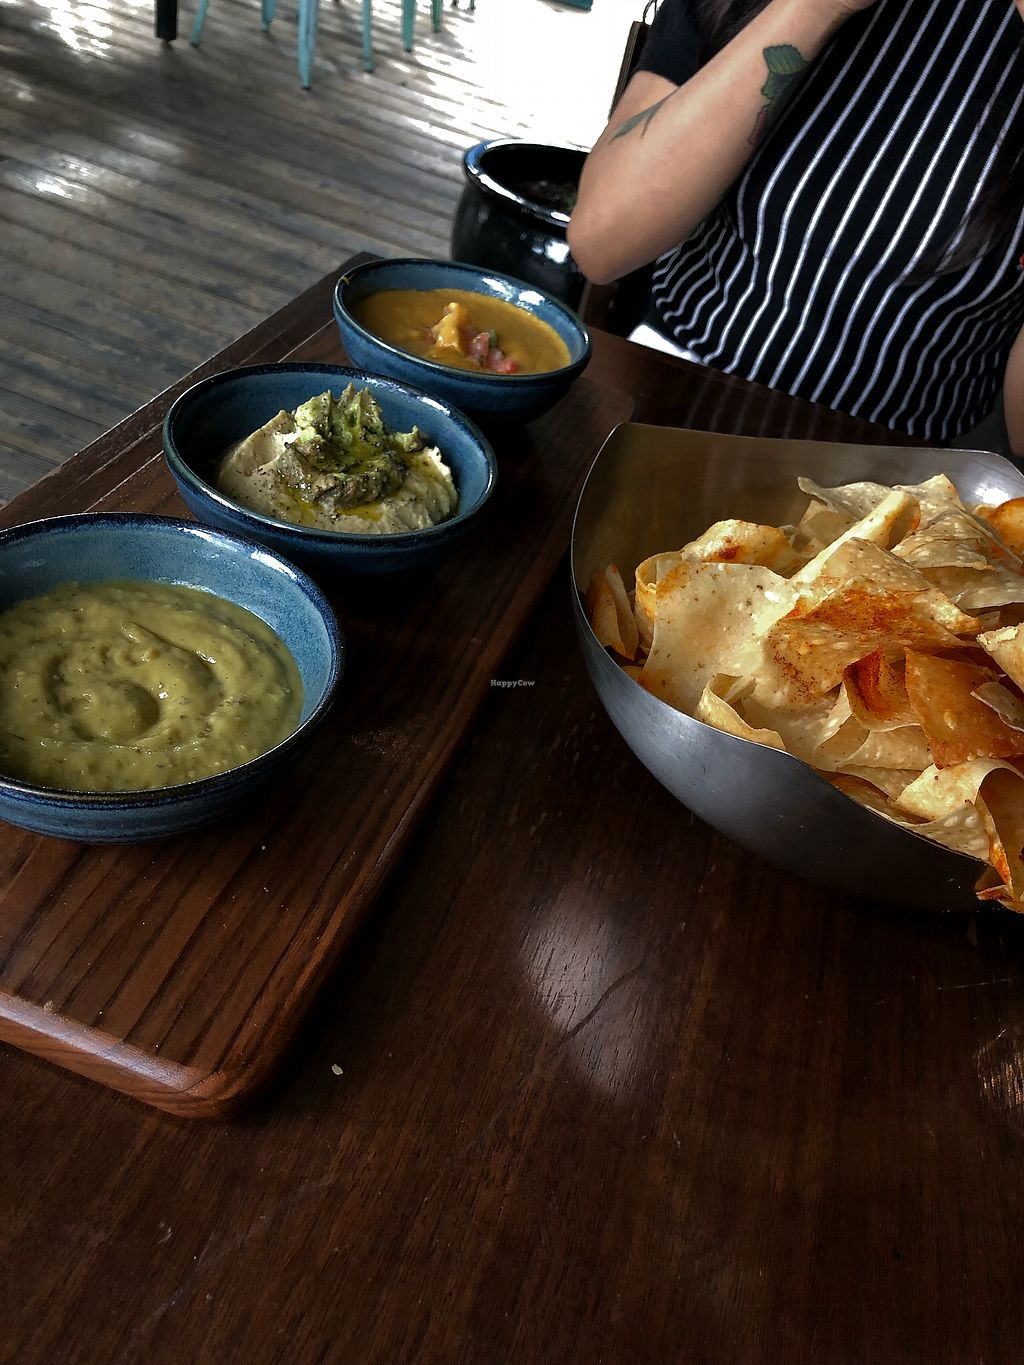 """Photo of V-Eats  by <a href=""""/members/profile/IannLopez"""">IannLopez</a> <br/>Trio dip consisting of the Salsa Verde, Hummus dip and Chili Con Quest <br/> February 25, 2018  - <a href='/contact/abuse/image/82061/363804'>Report</a>"""